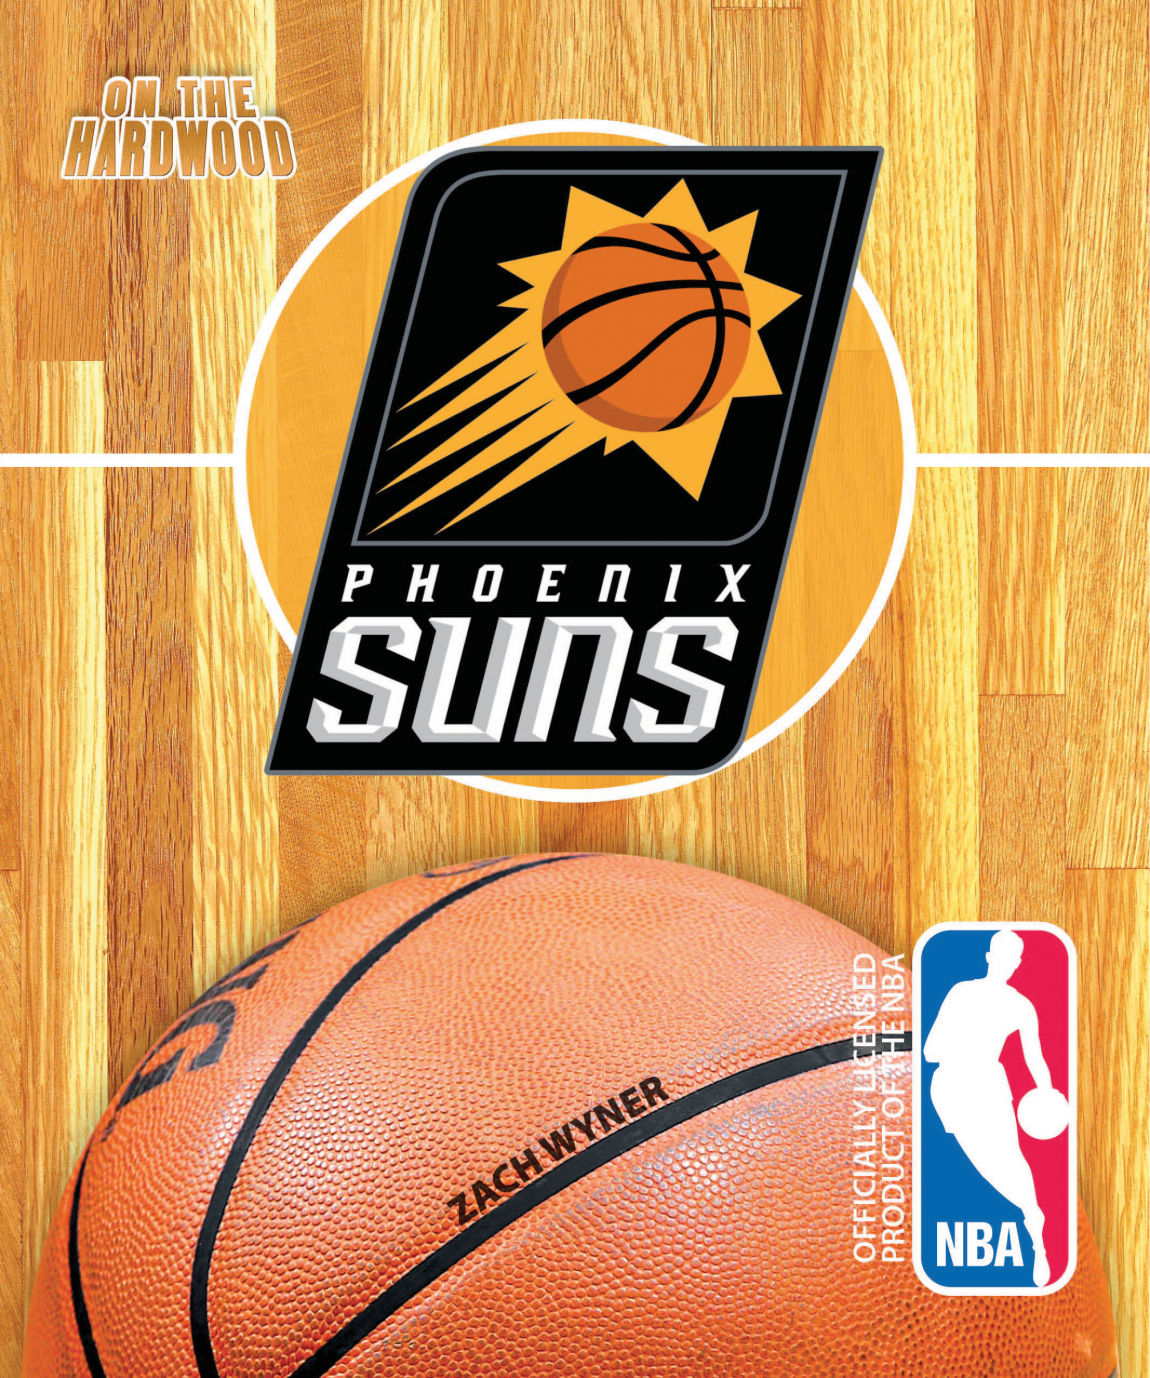 Suns-1.png